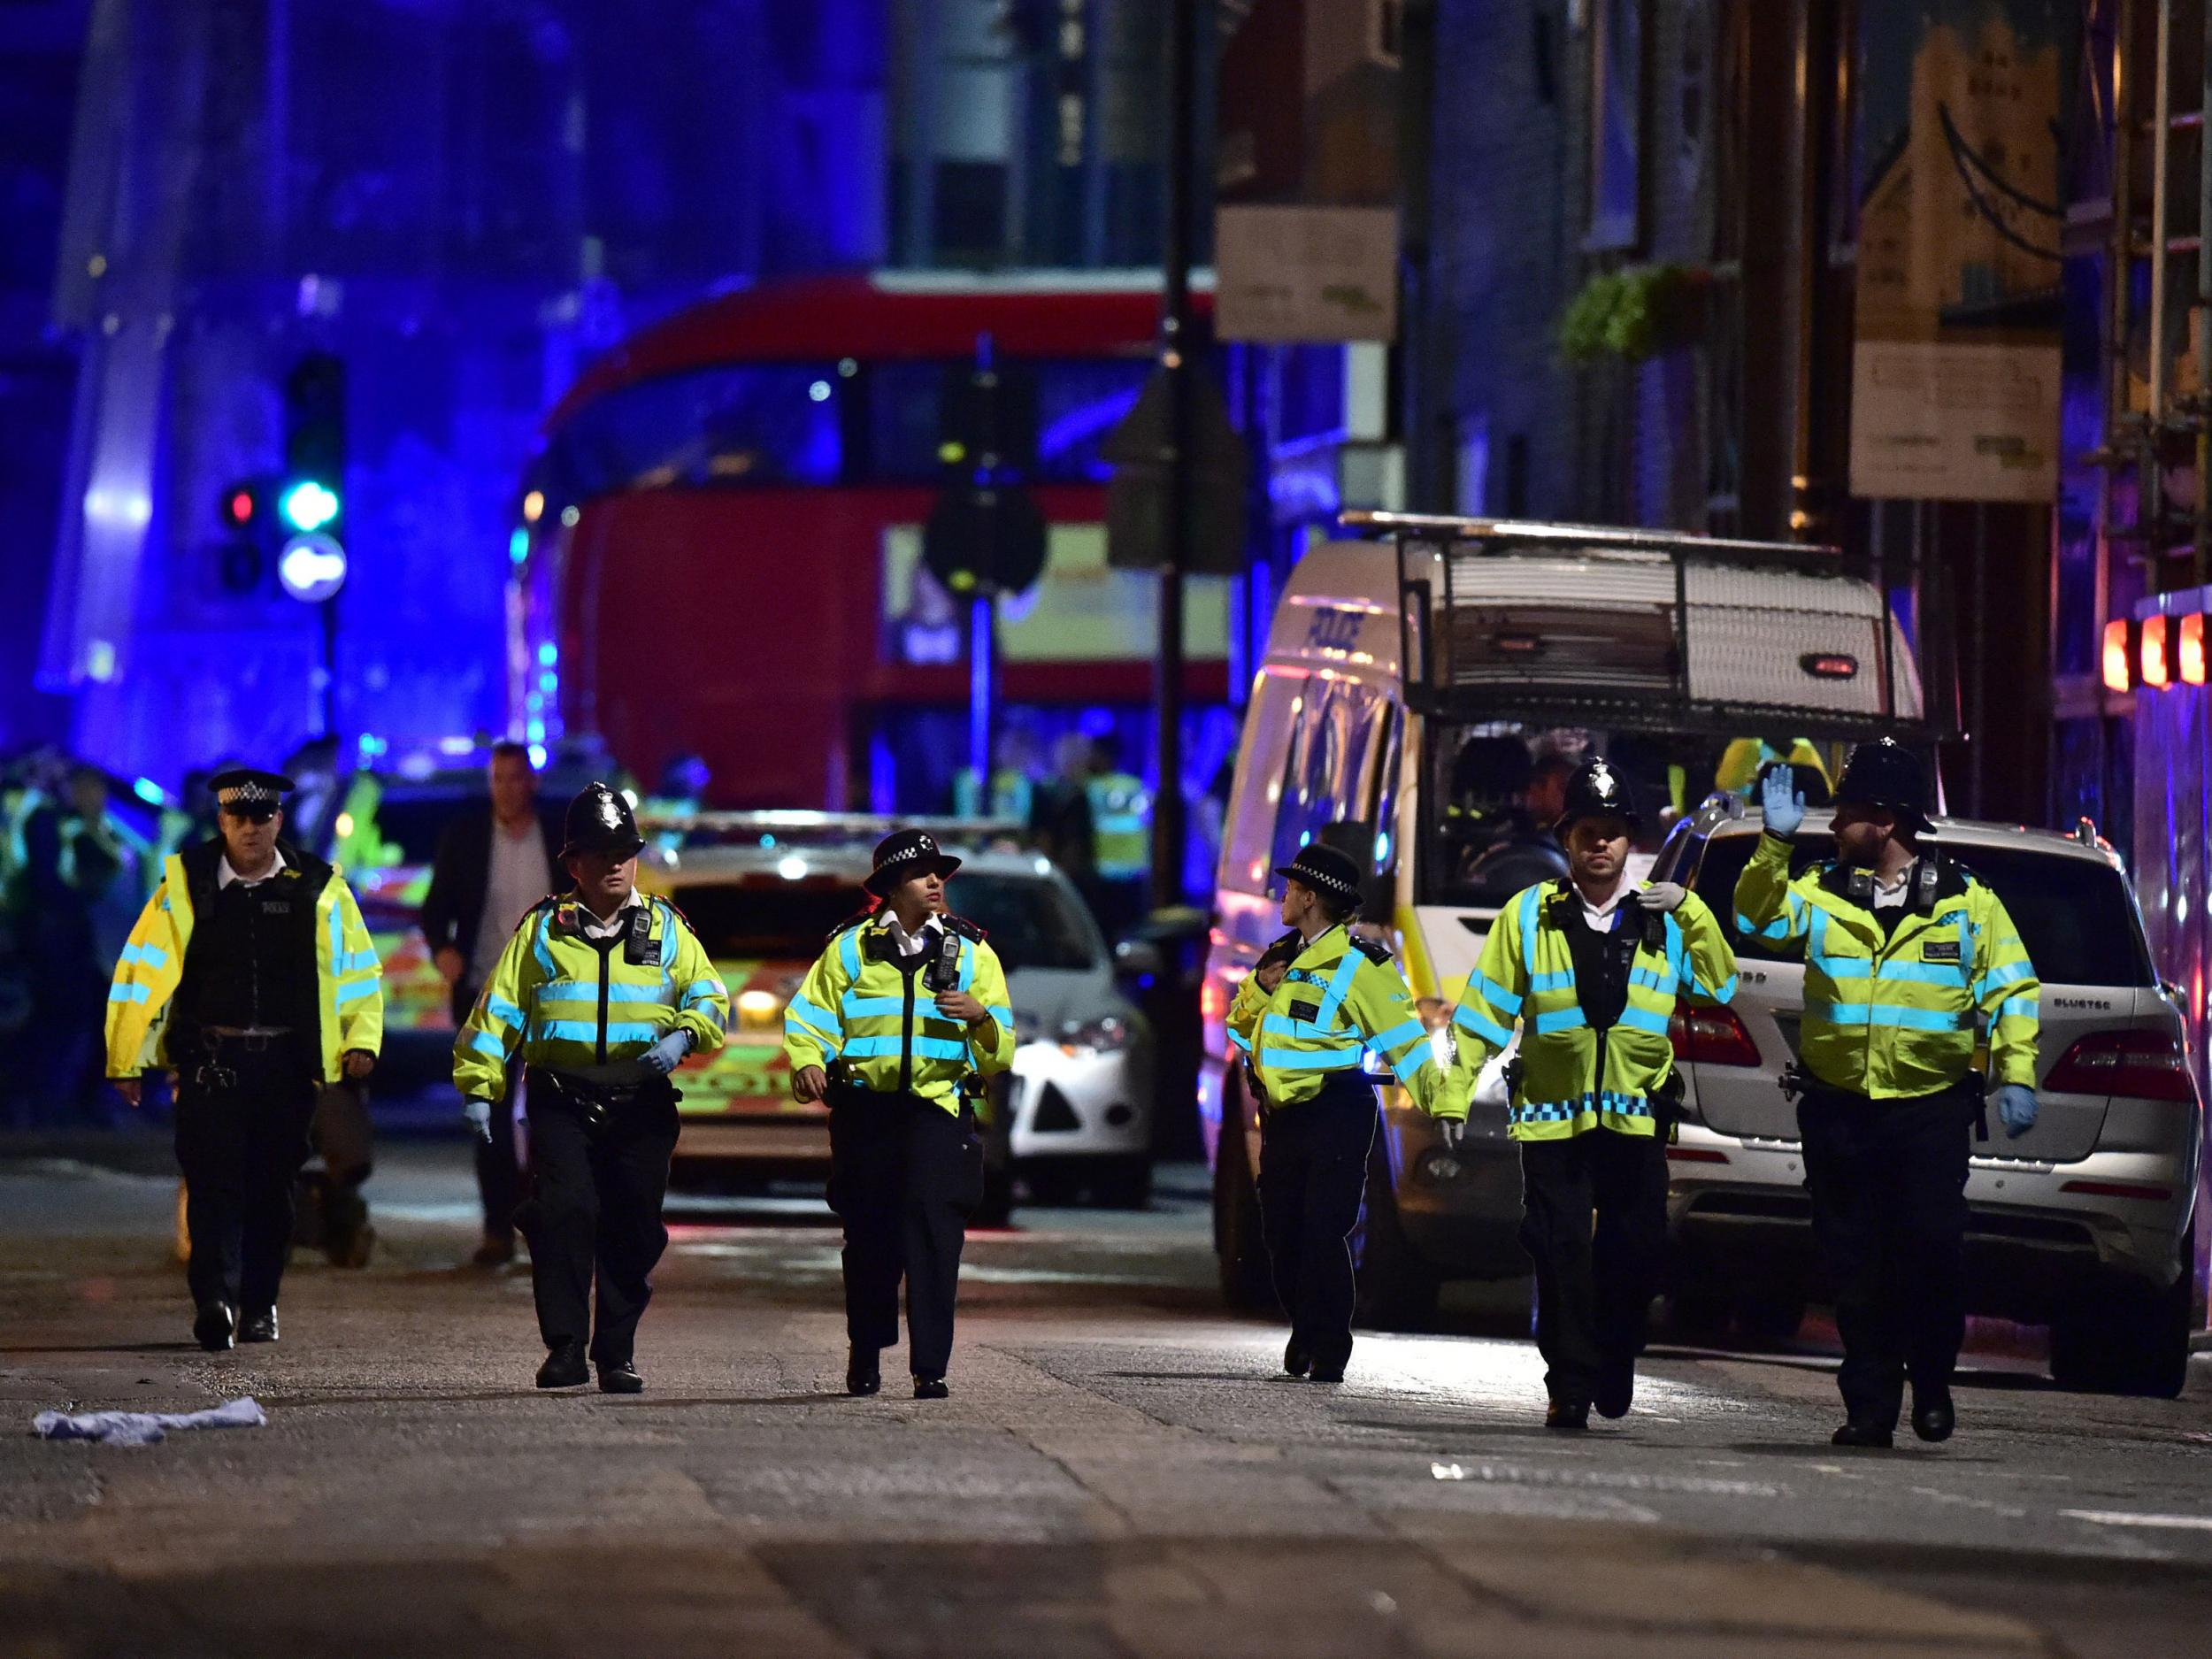 London Bridge attackers were lawfully killed by armed police, inques…